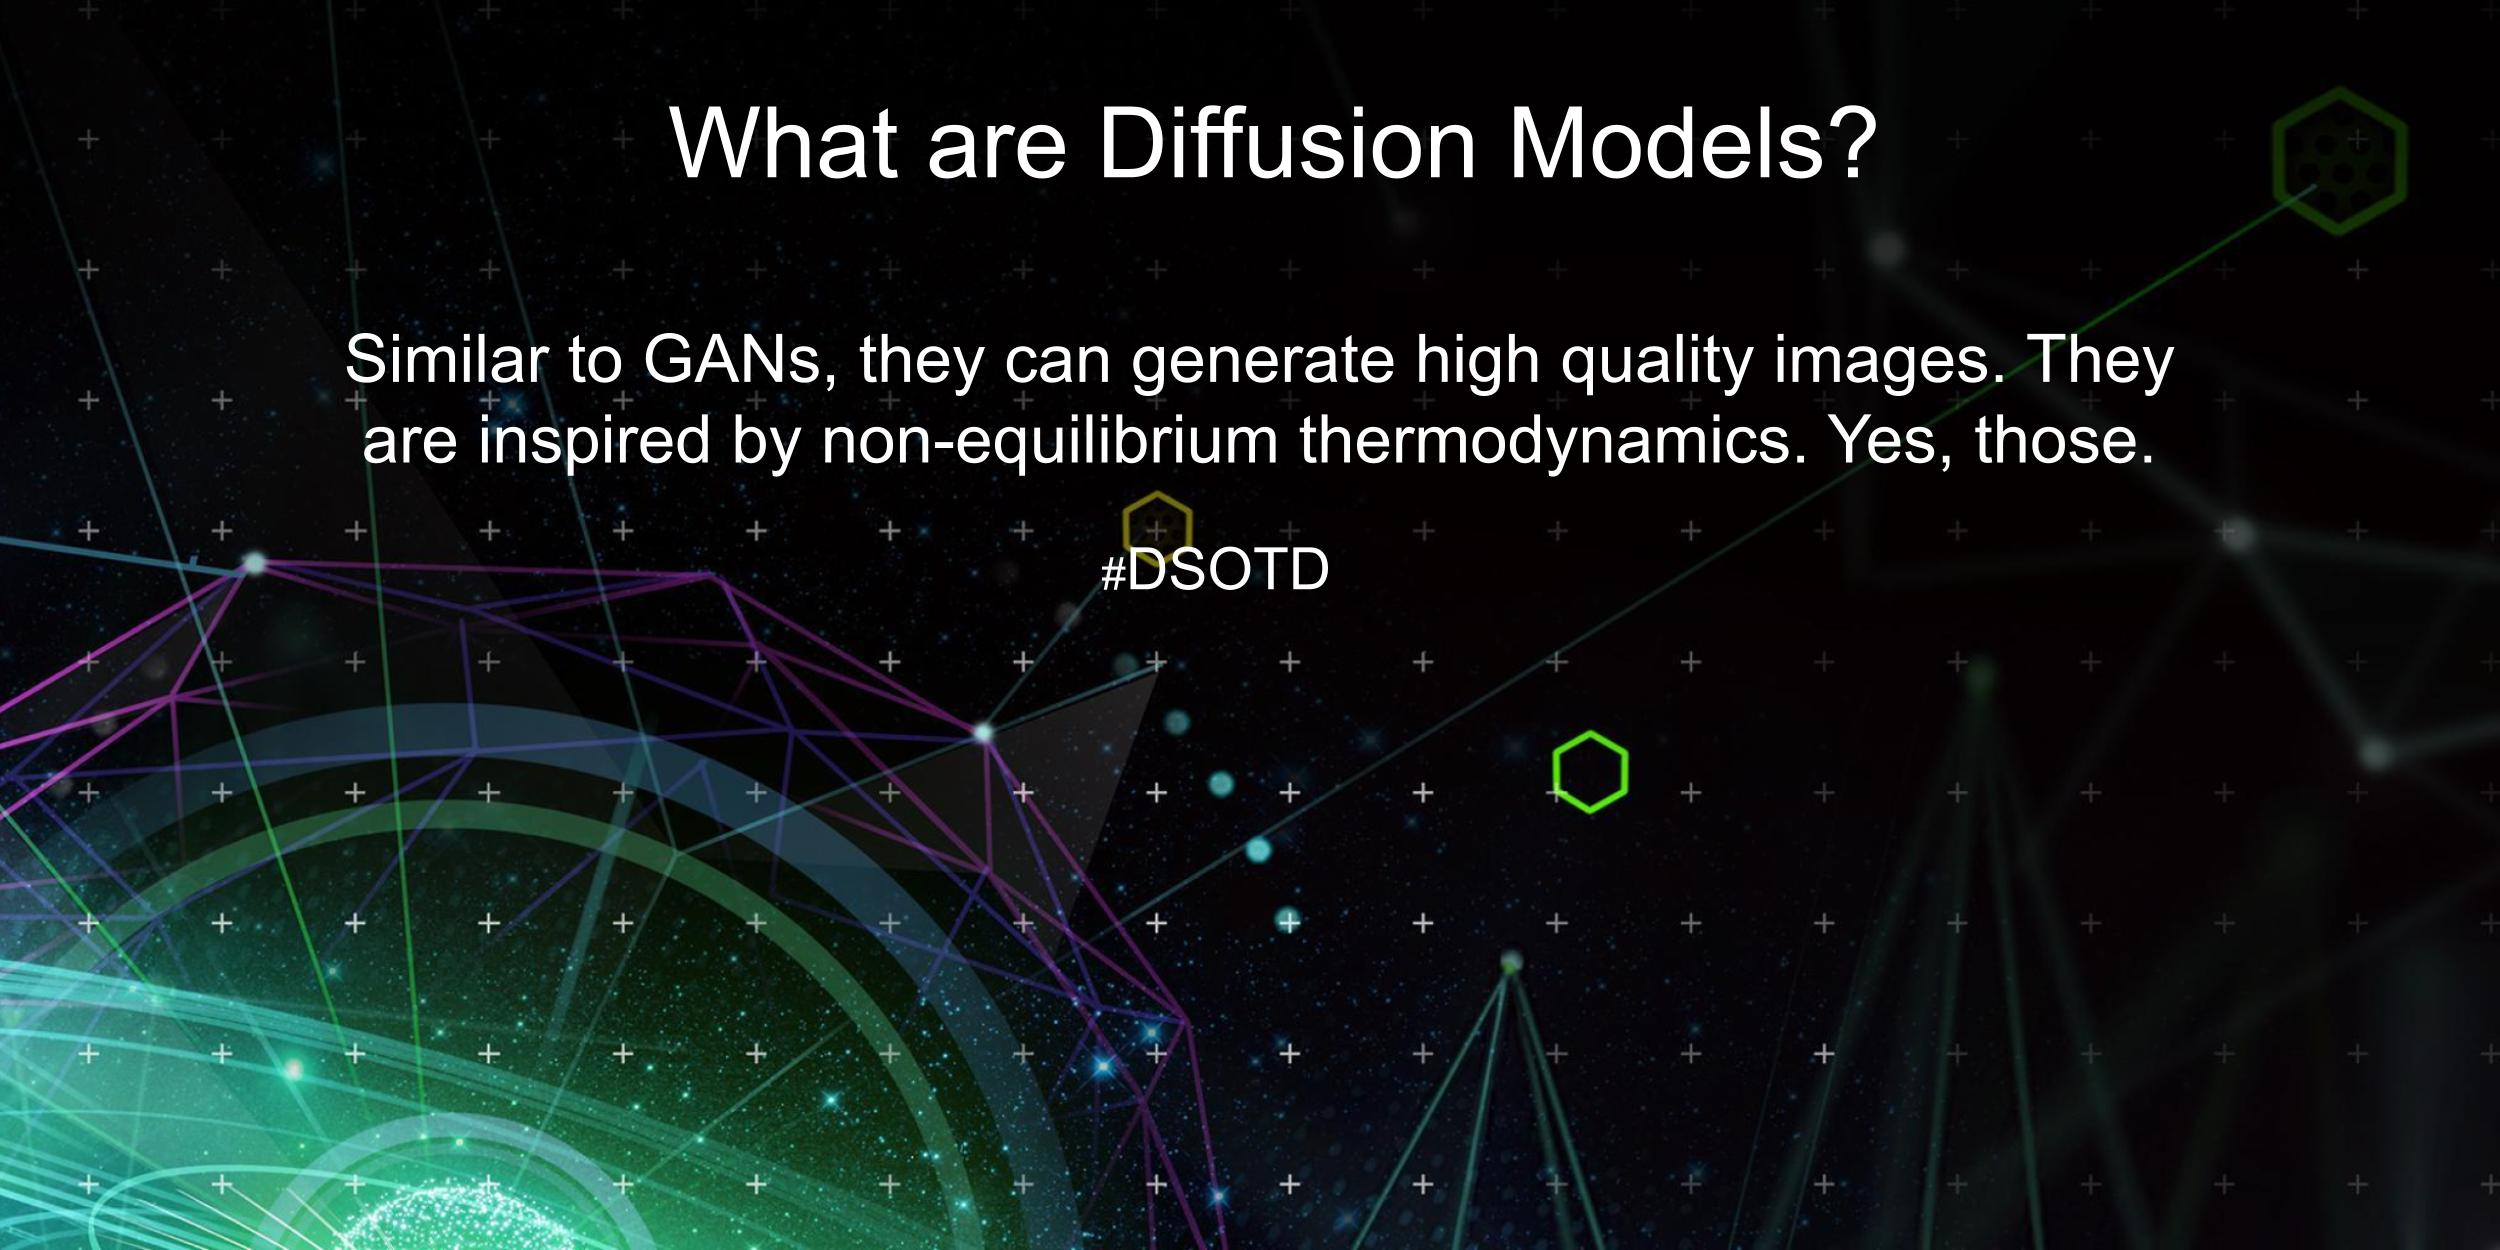 Similar to GANs, they can generate high quality images. They are inspired by non-equilibrium thermodynamics. Yes, those.